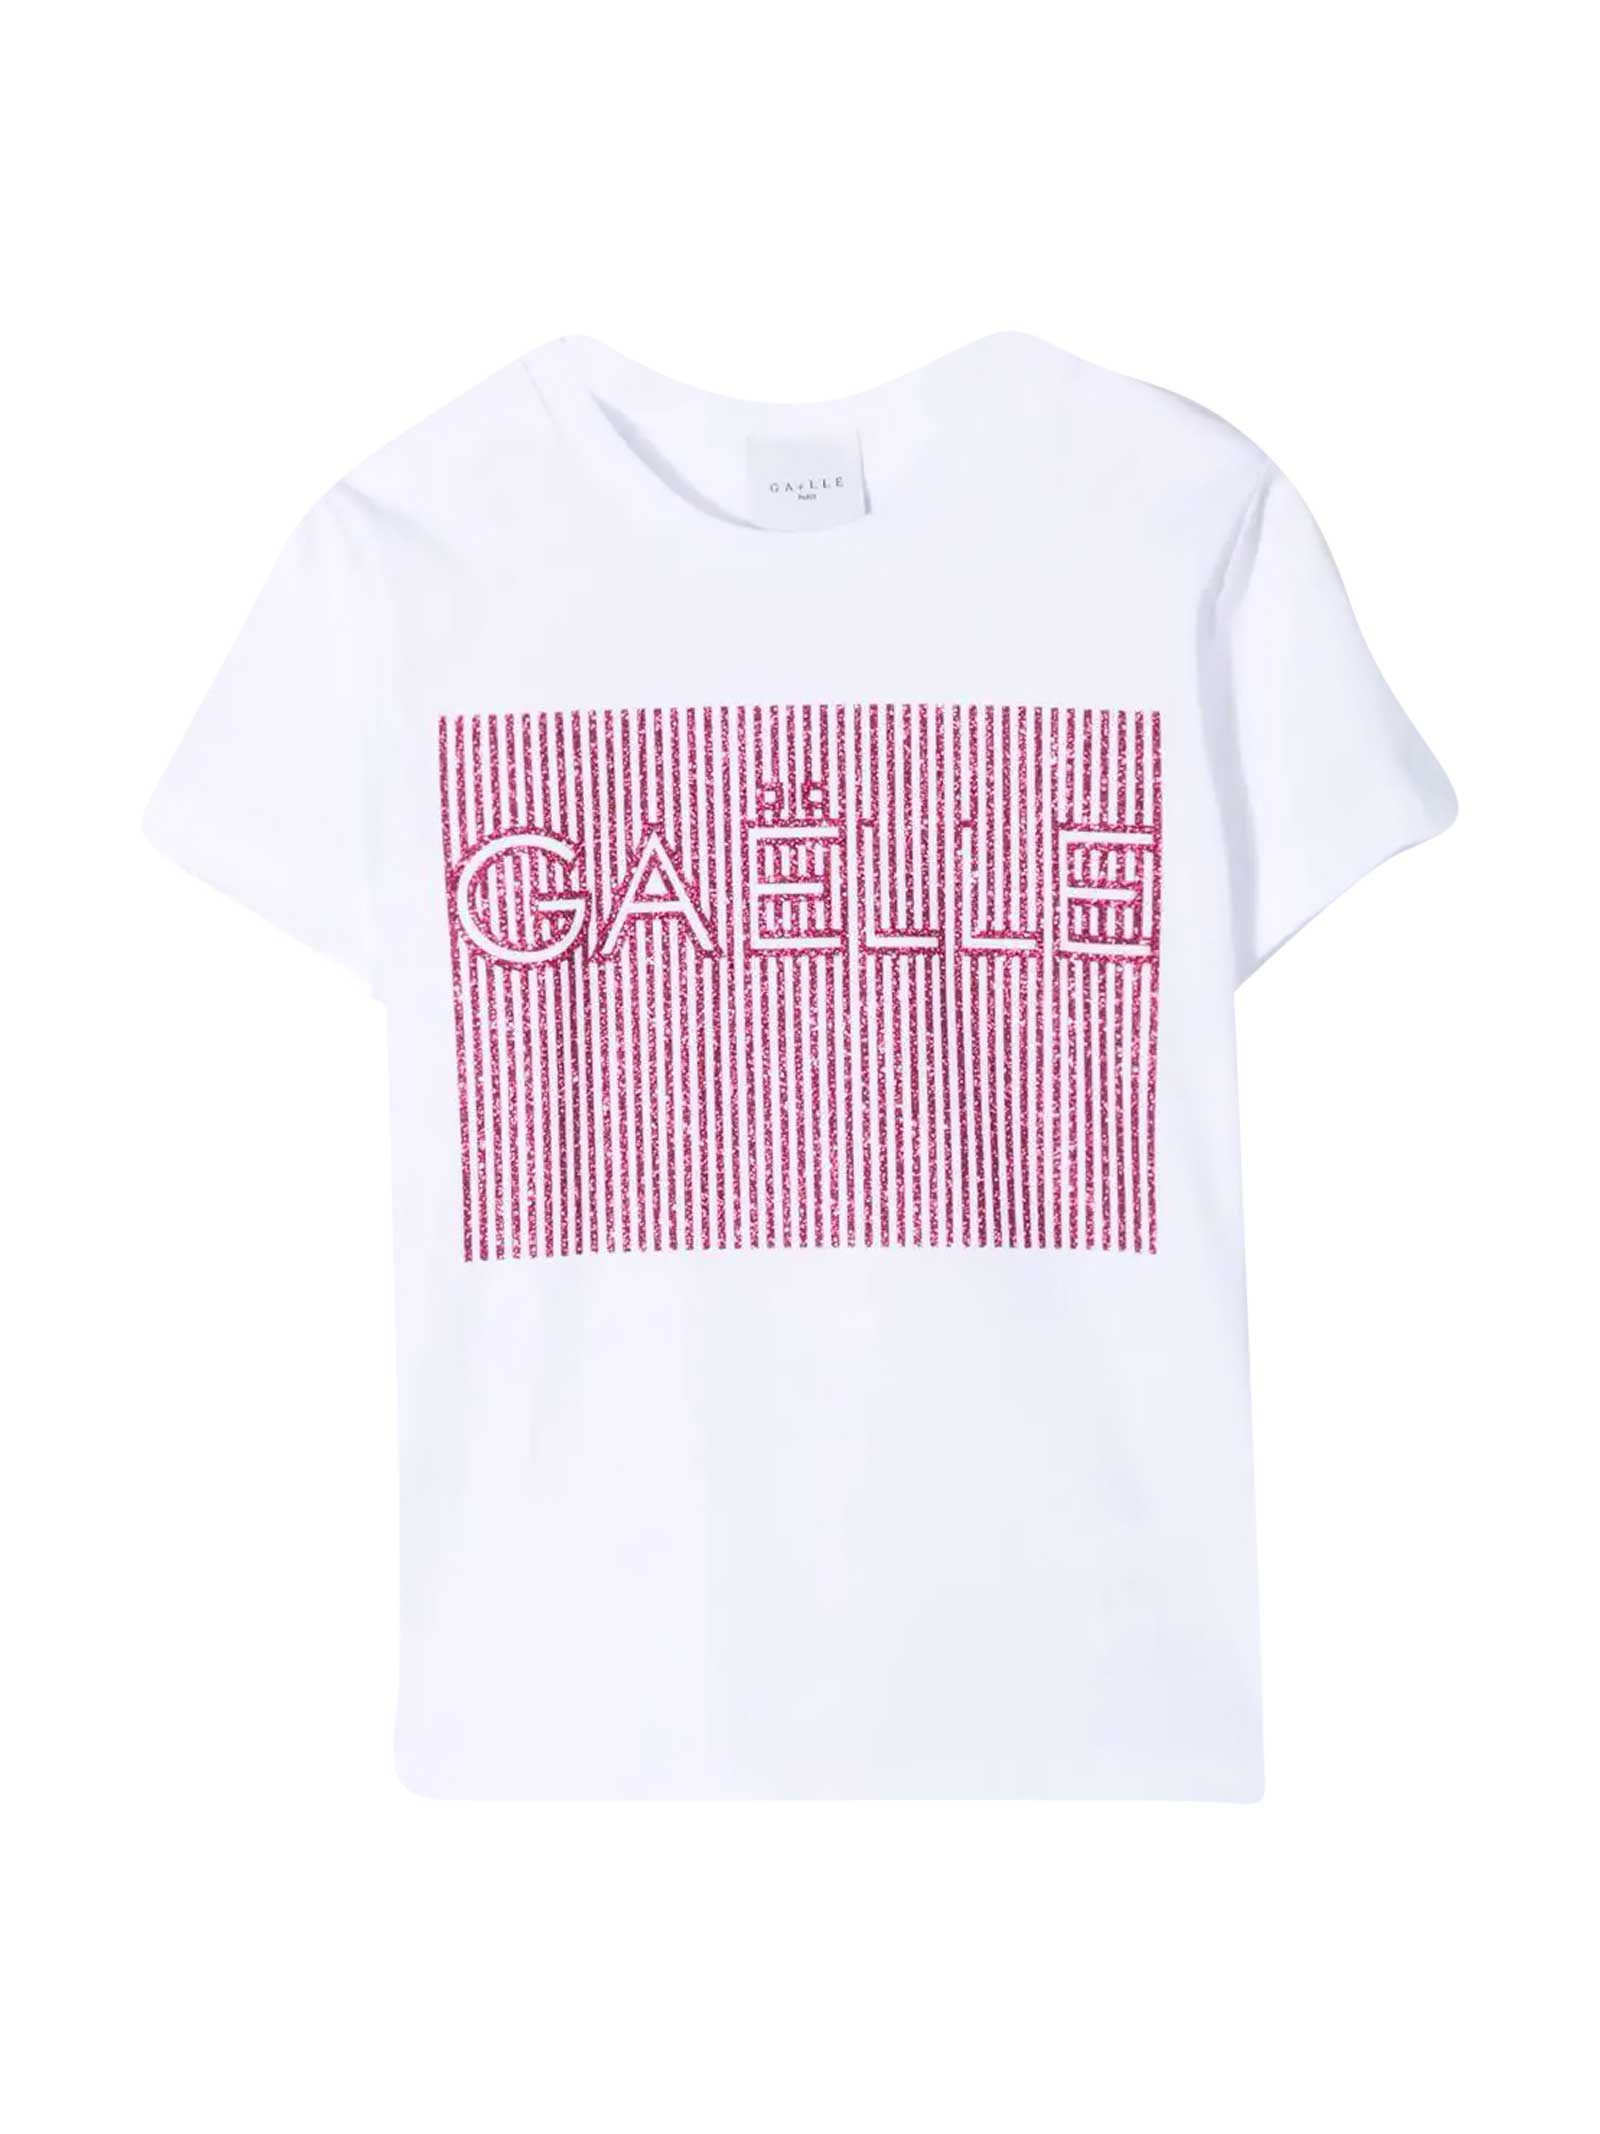 T-shirt With Glitter Details